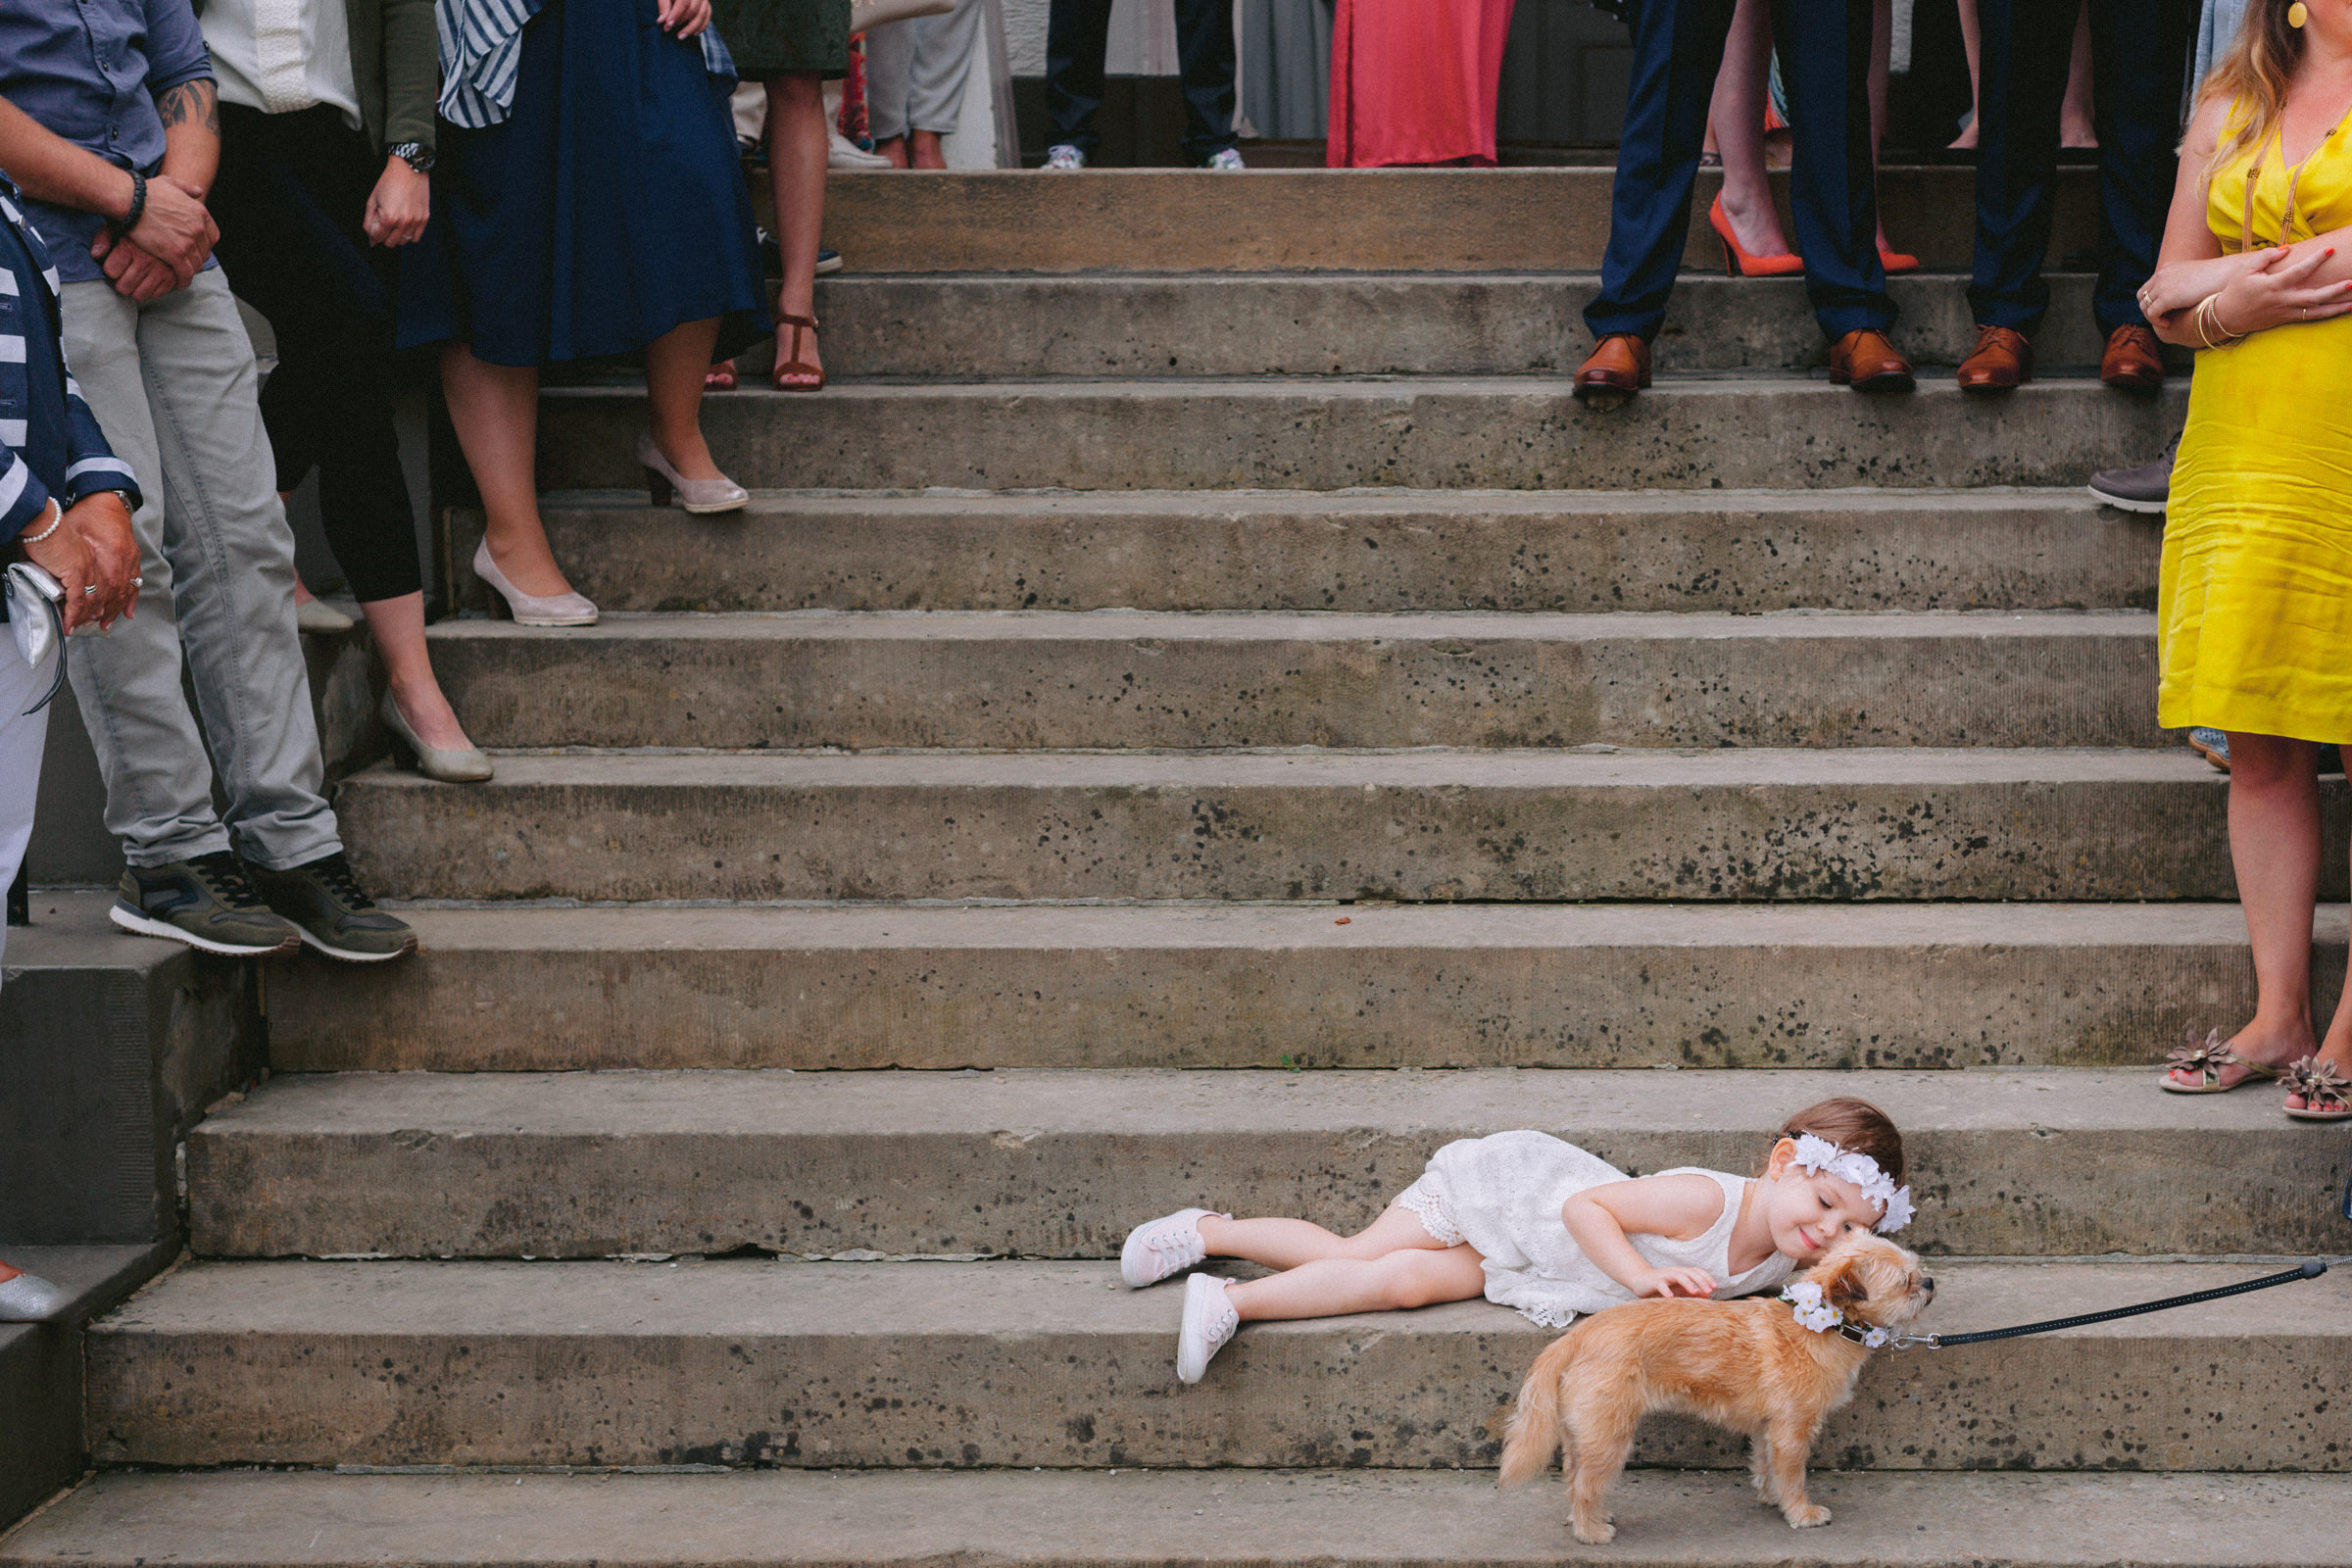 dog-show-peter-van-der-lingen-worlds-best-wedding-photos-cute-child-with-dog-on-stairs